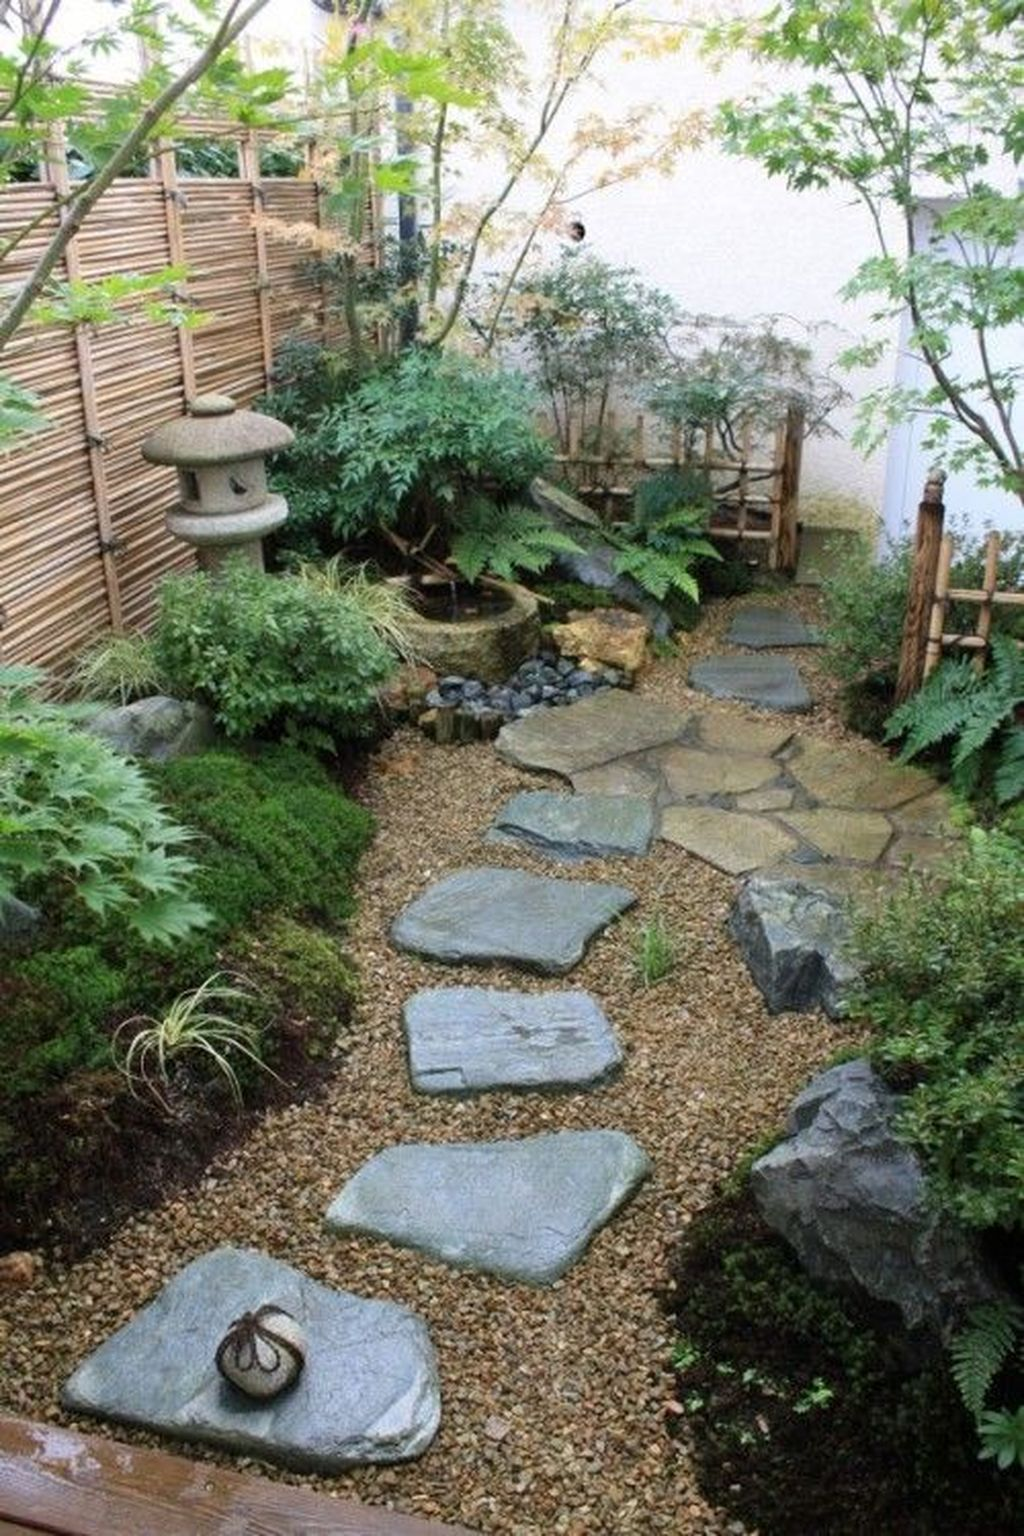 32 Stunning Tiny Garden Design Ideas To Get Beautiful Look #asiangarden